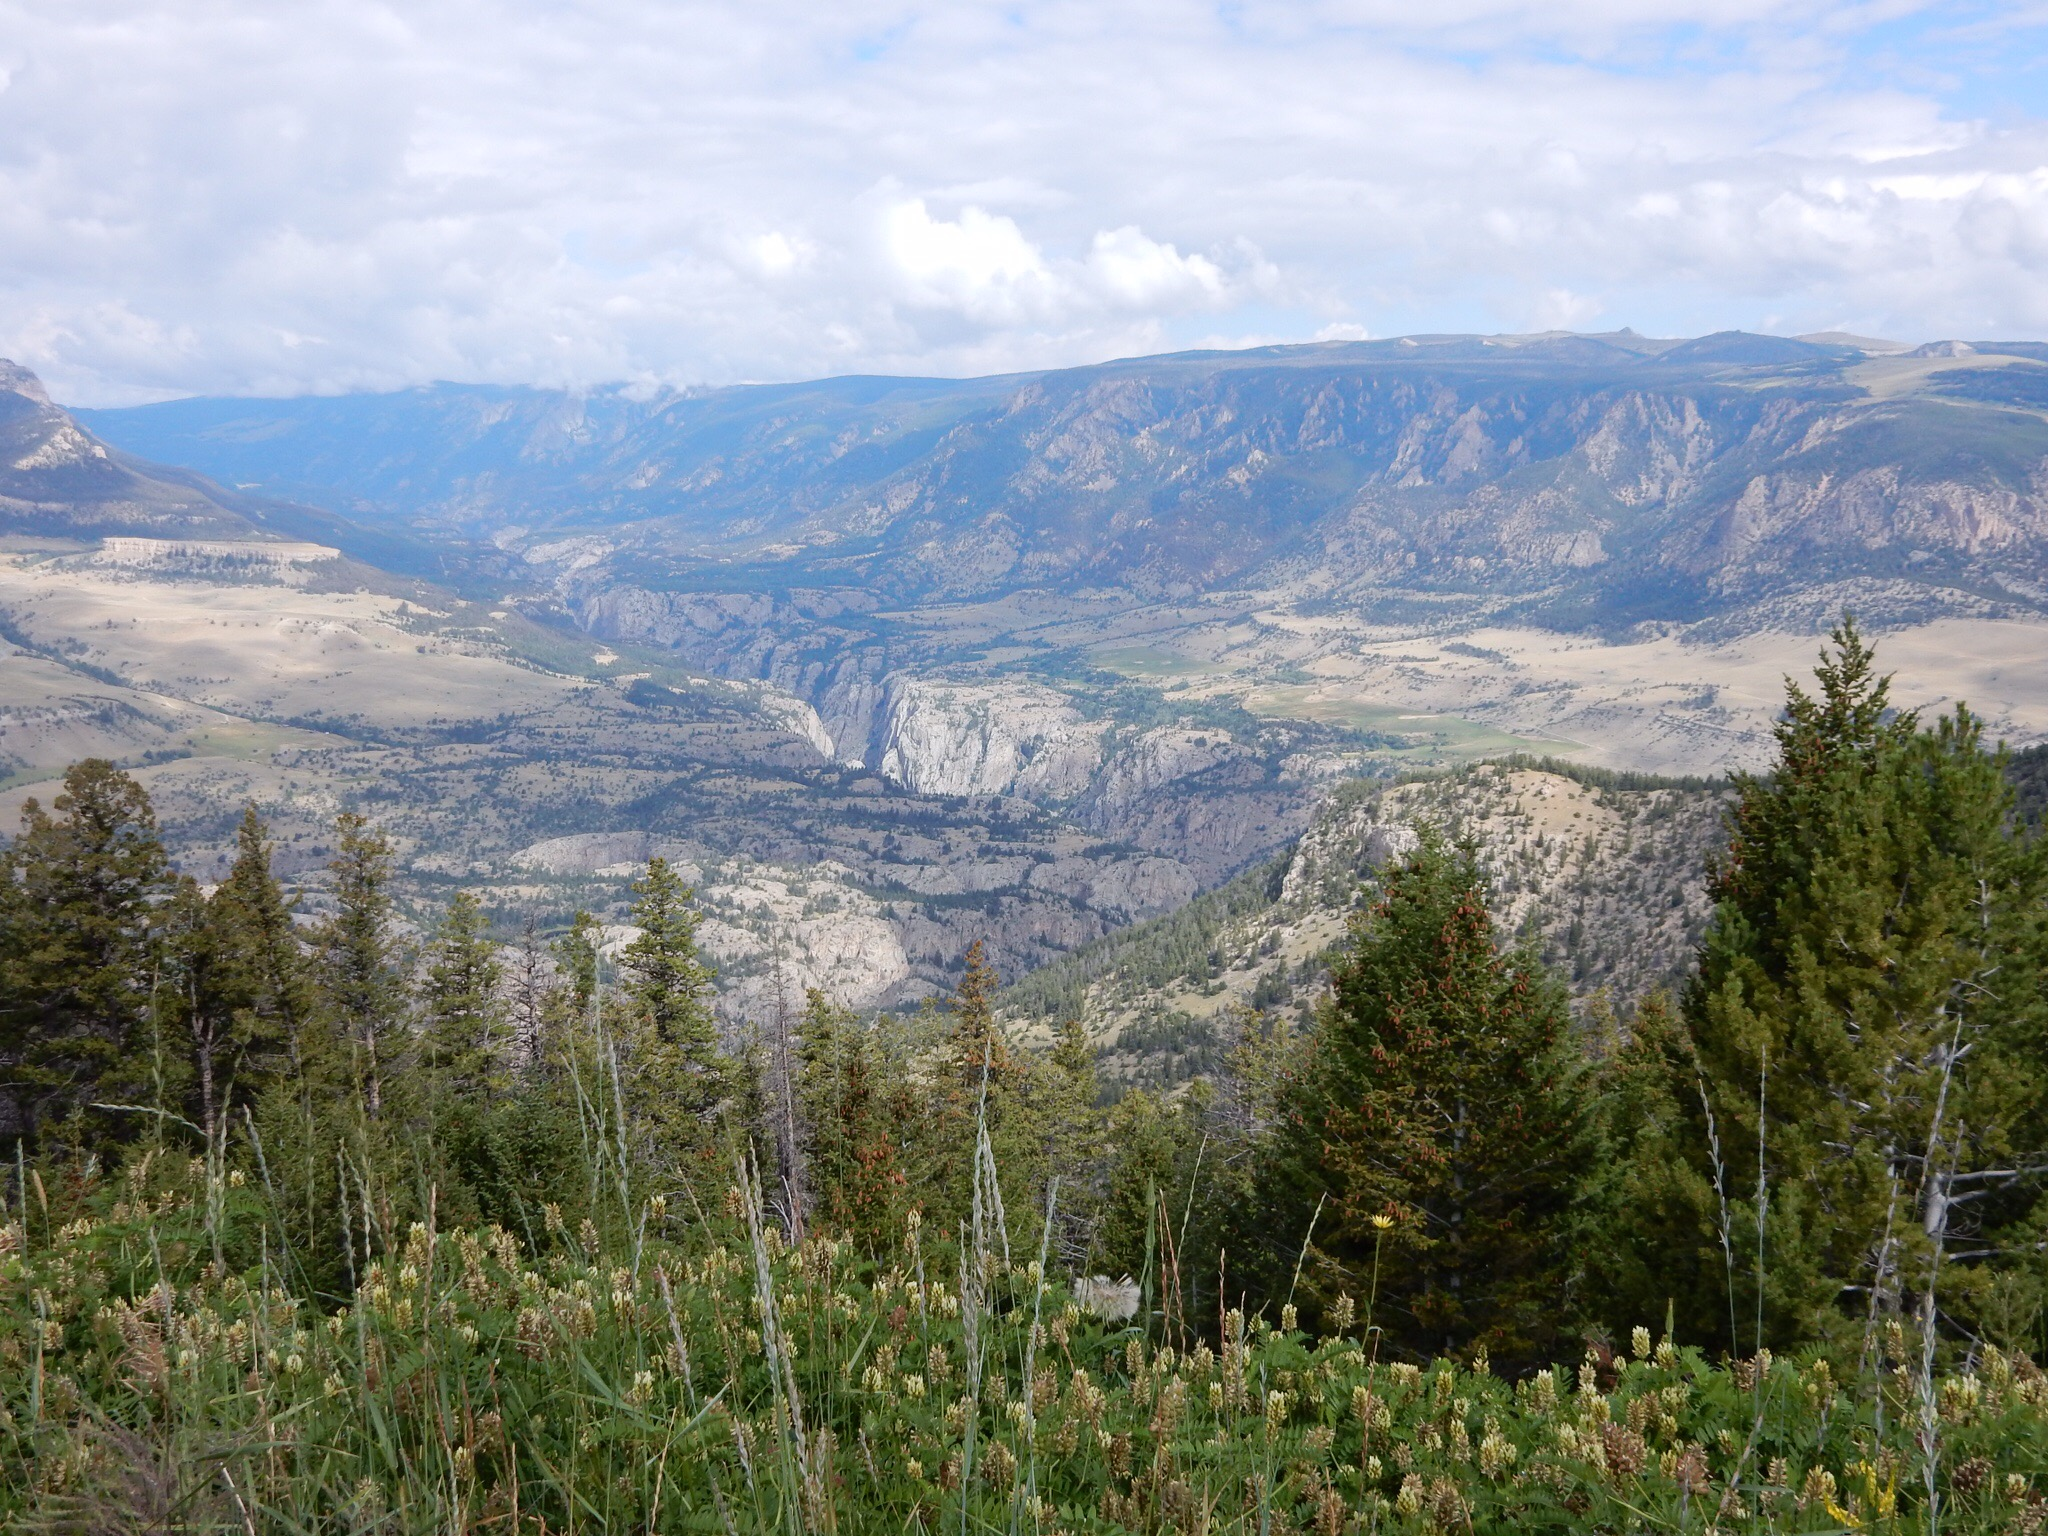 The gorge in the valley below is for the Clark Fork of the Yellowstone River. V